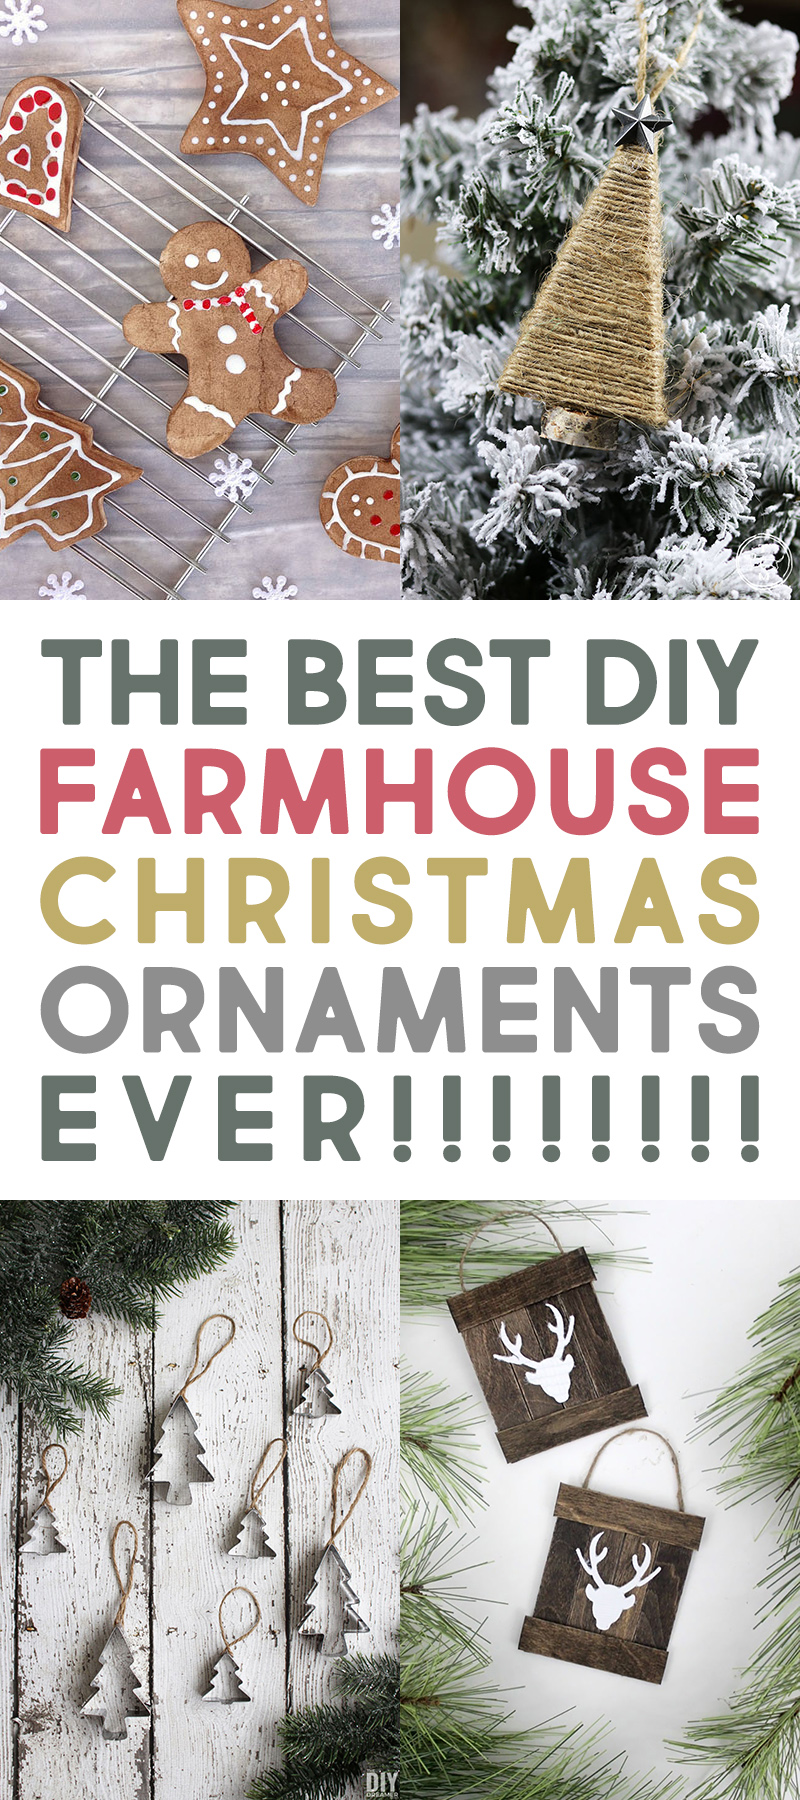 The Best Diy Farmhouse Christmas Ornaments Ever The Cottage Market